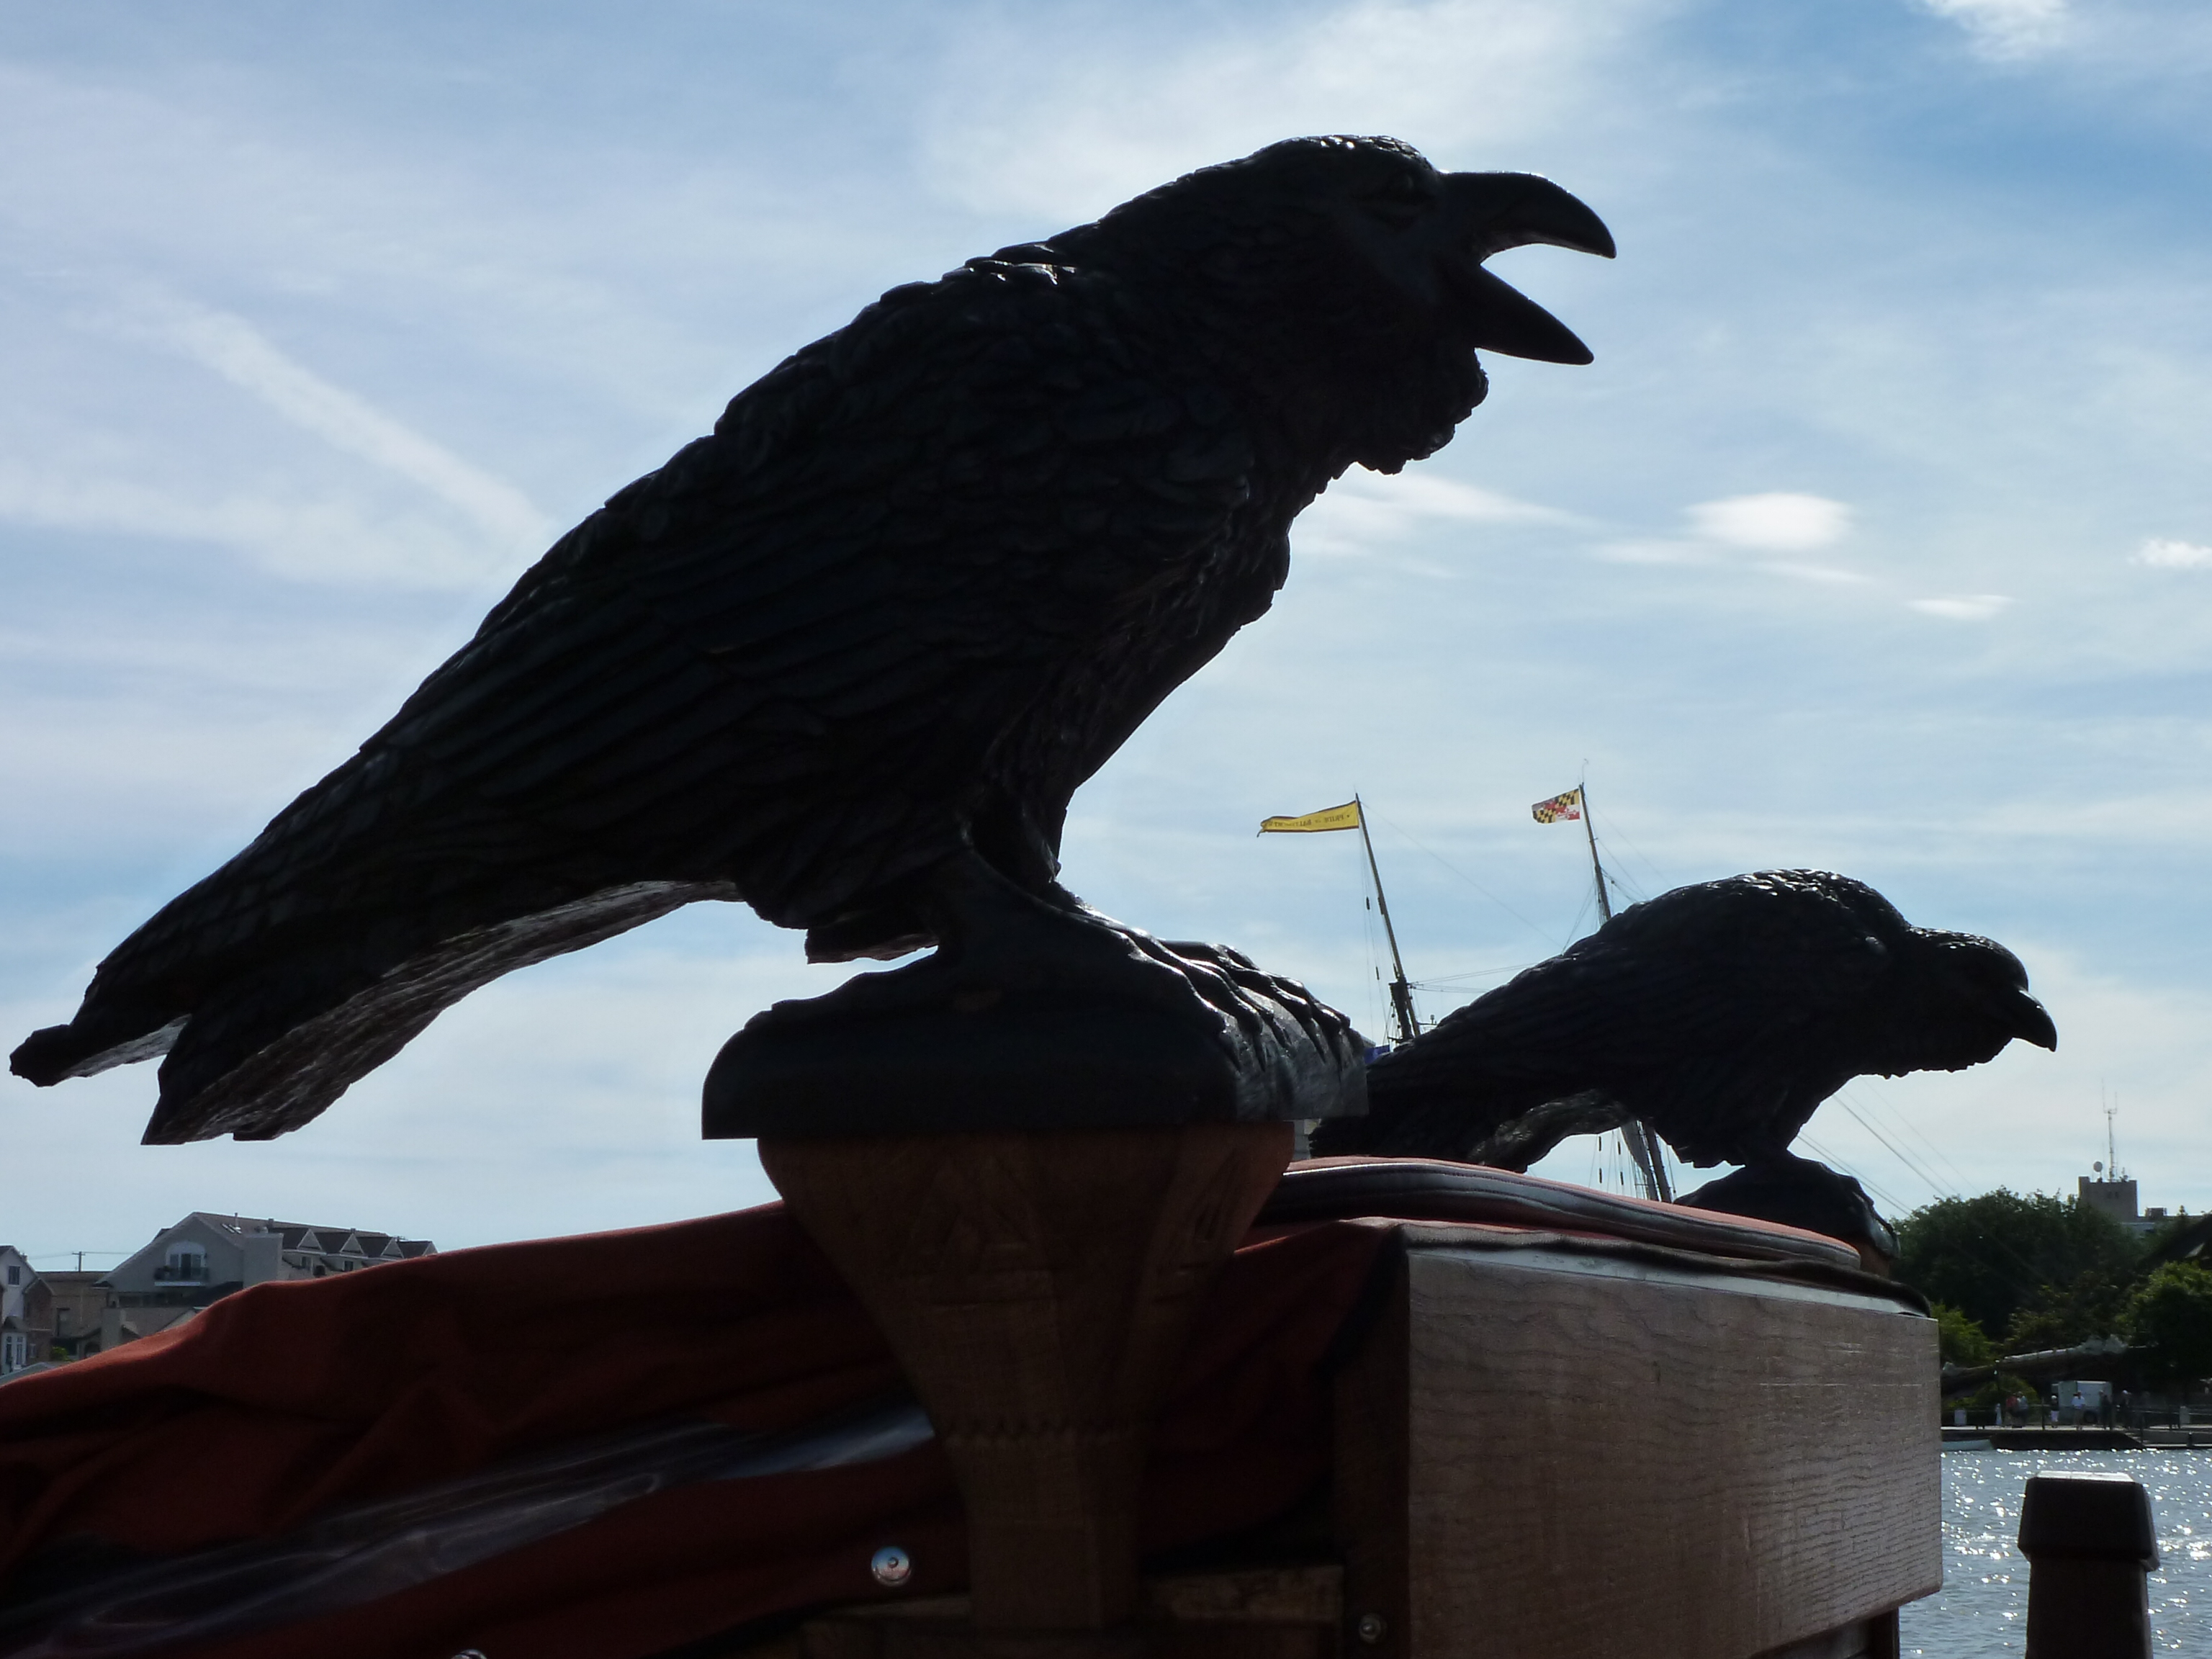 Photo: Karla Lunde Barber These carved birds represent the two ravens of Norse mythology who went out each day and returned to Odin's shoulder with all the news of the world.